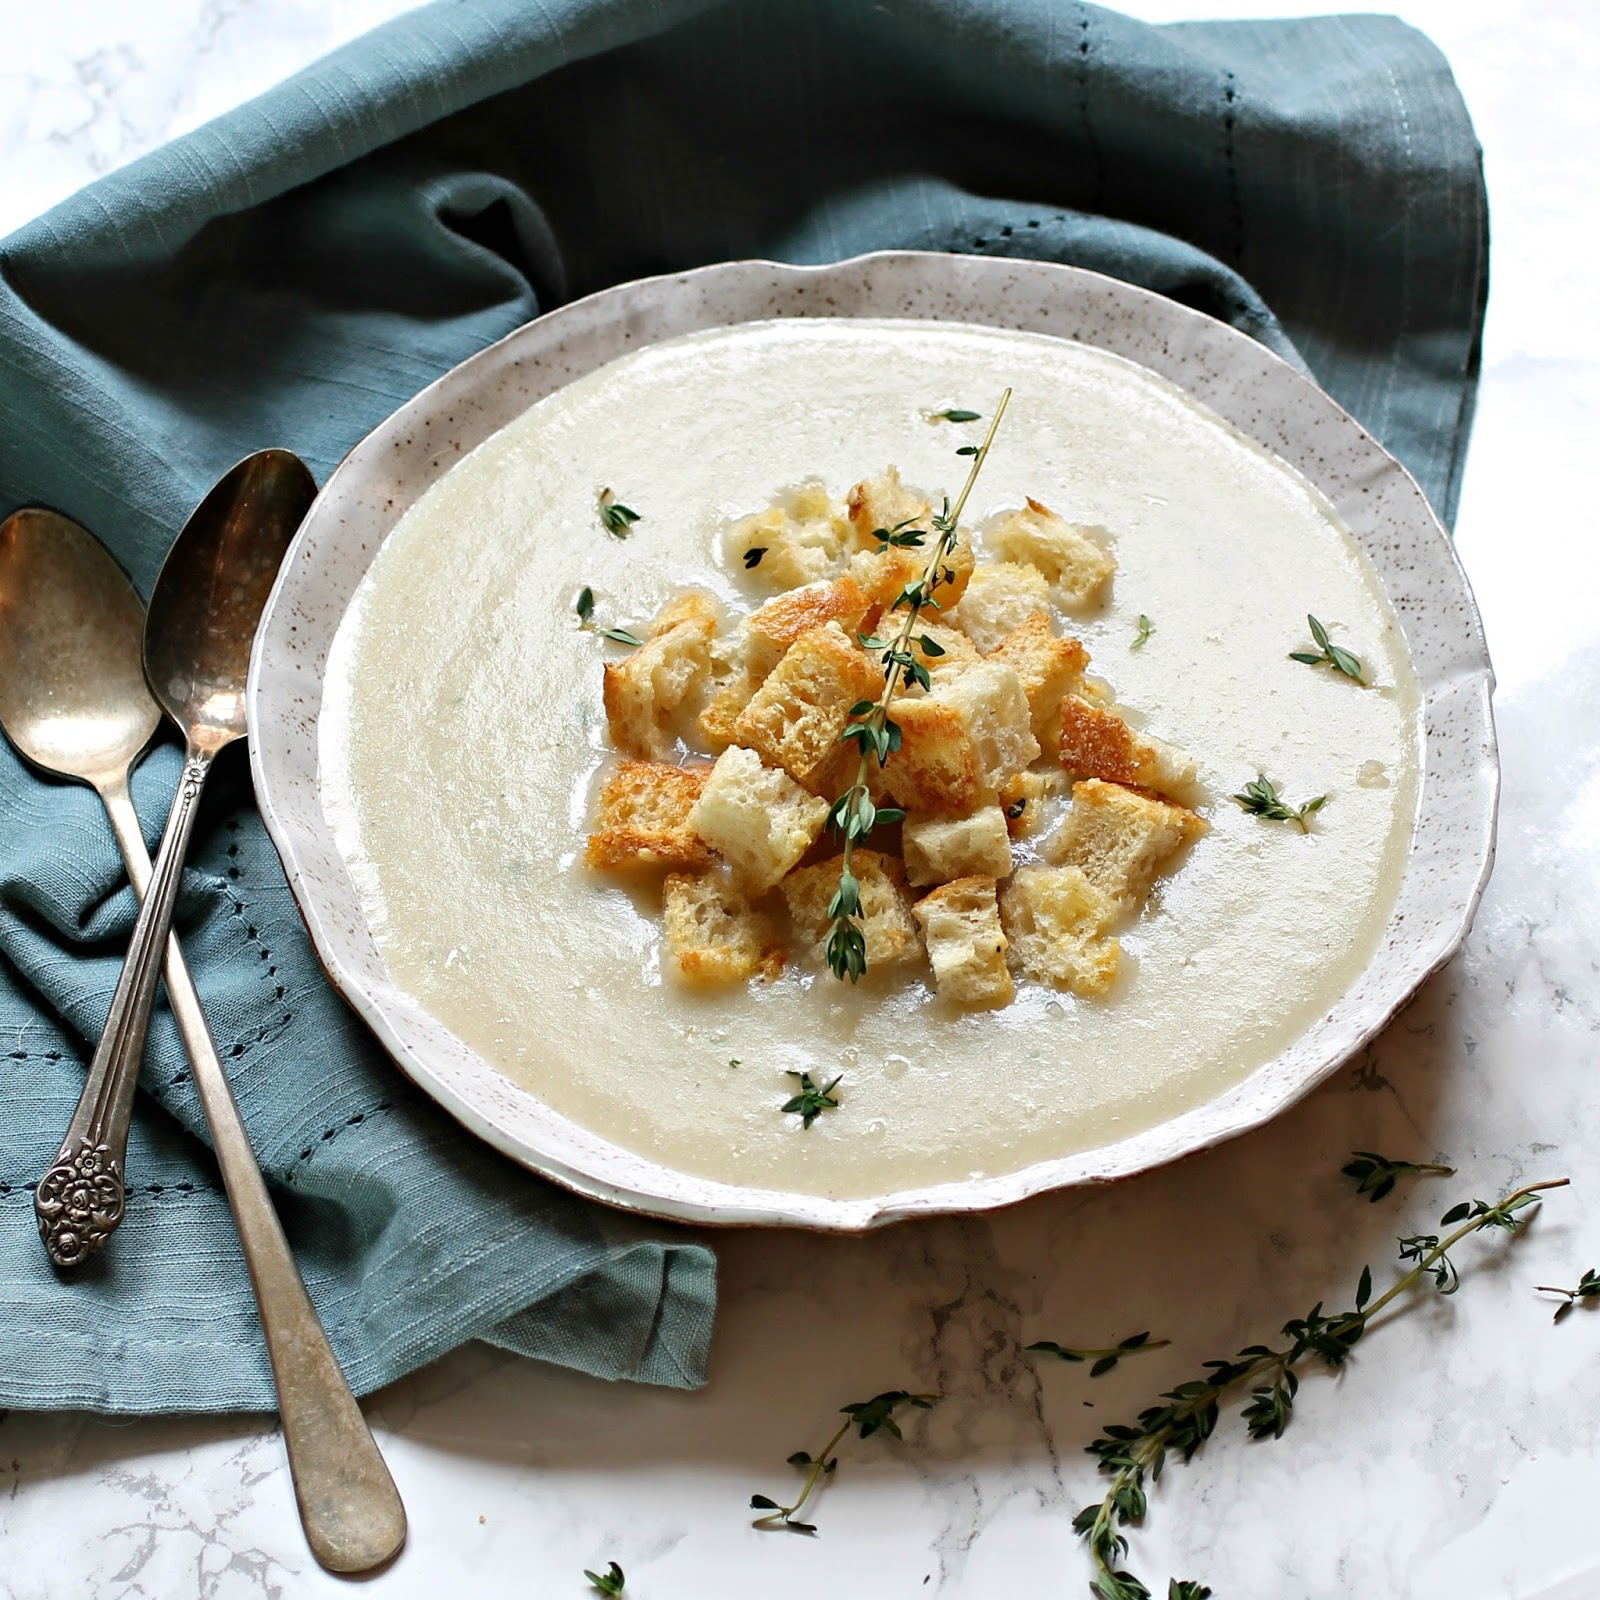 ... : Jerusalem Artichoke Soup with Smoked Cheddar and Thyme Croutons